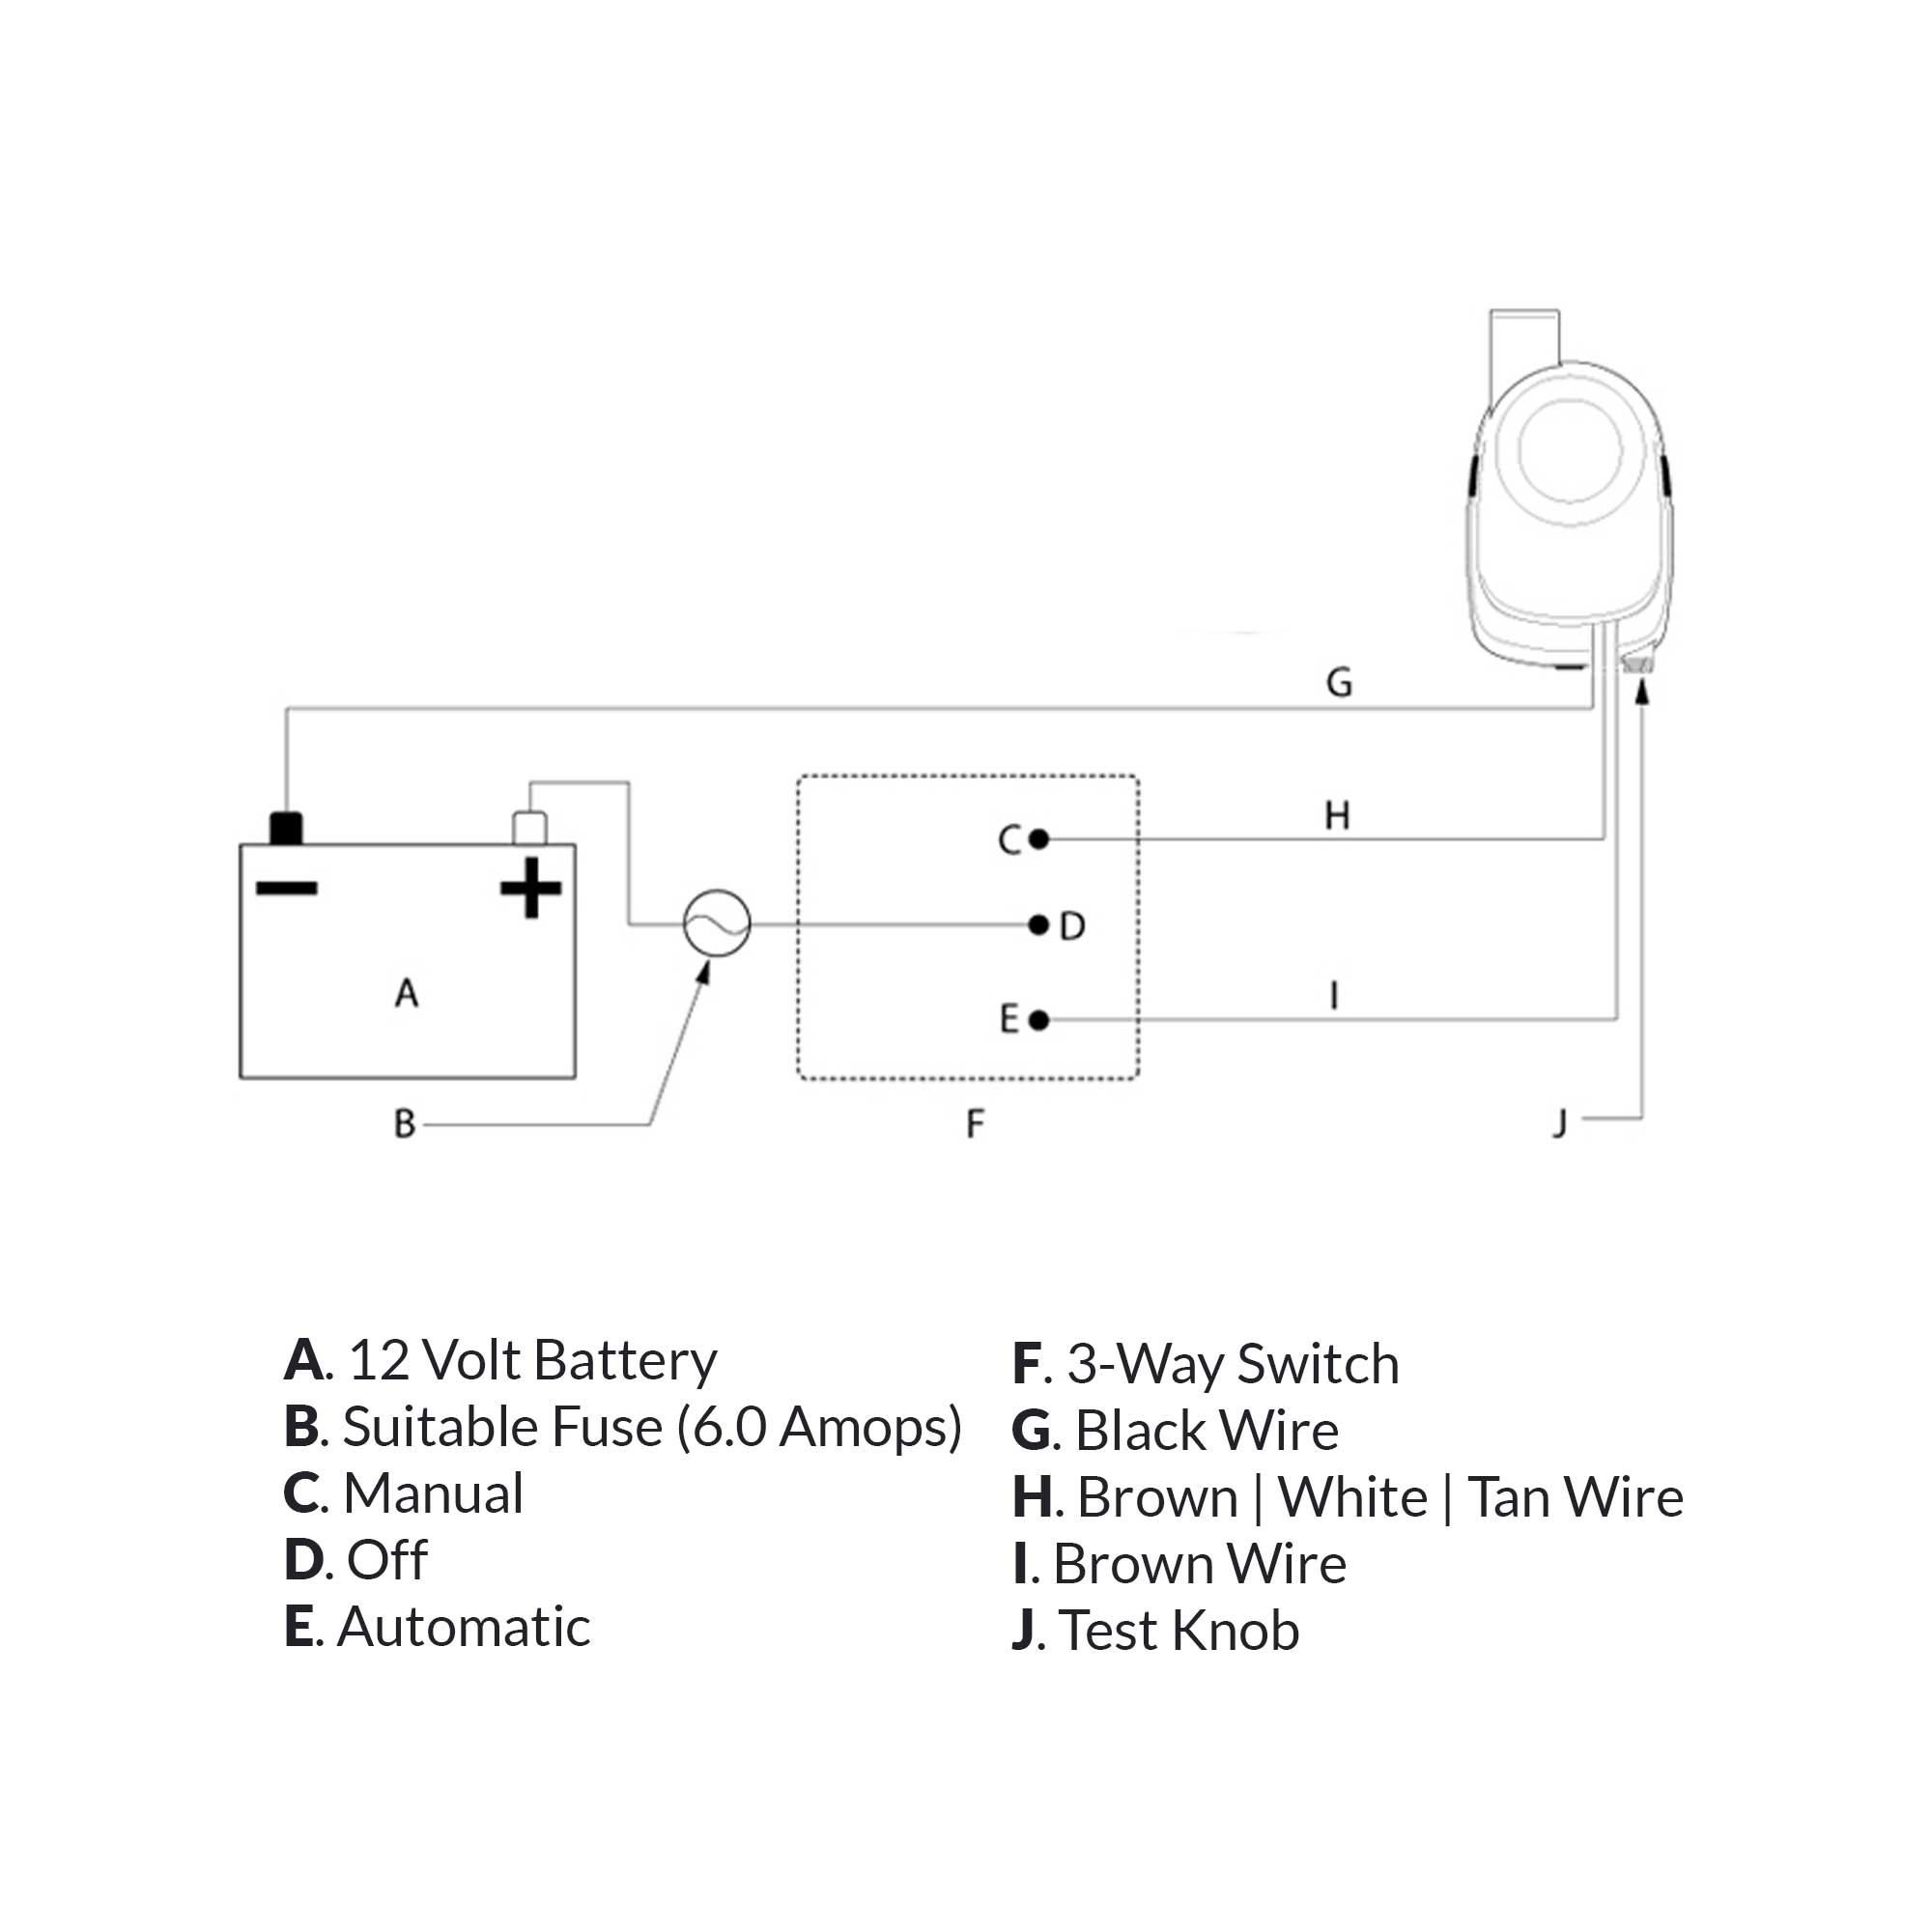 hight resolution of wiring diagram for boat wiring diagram for inverter wiring diagram for spotlight wiring